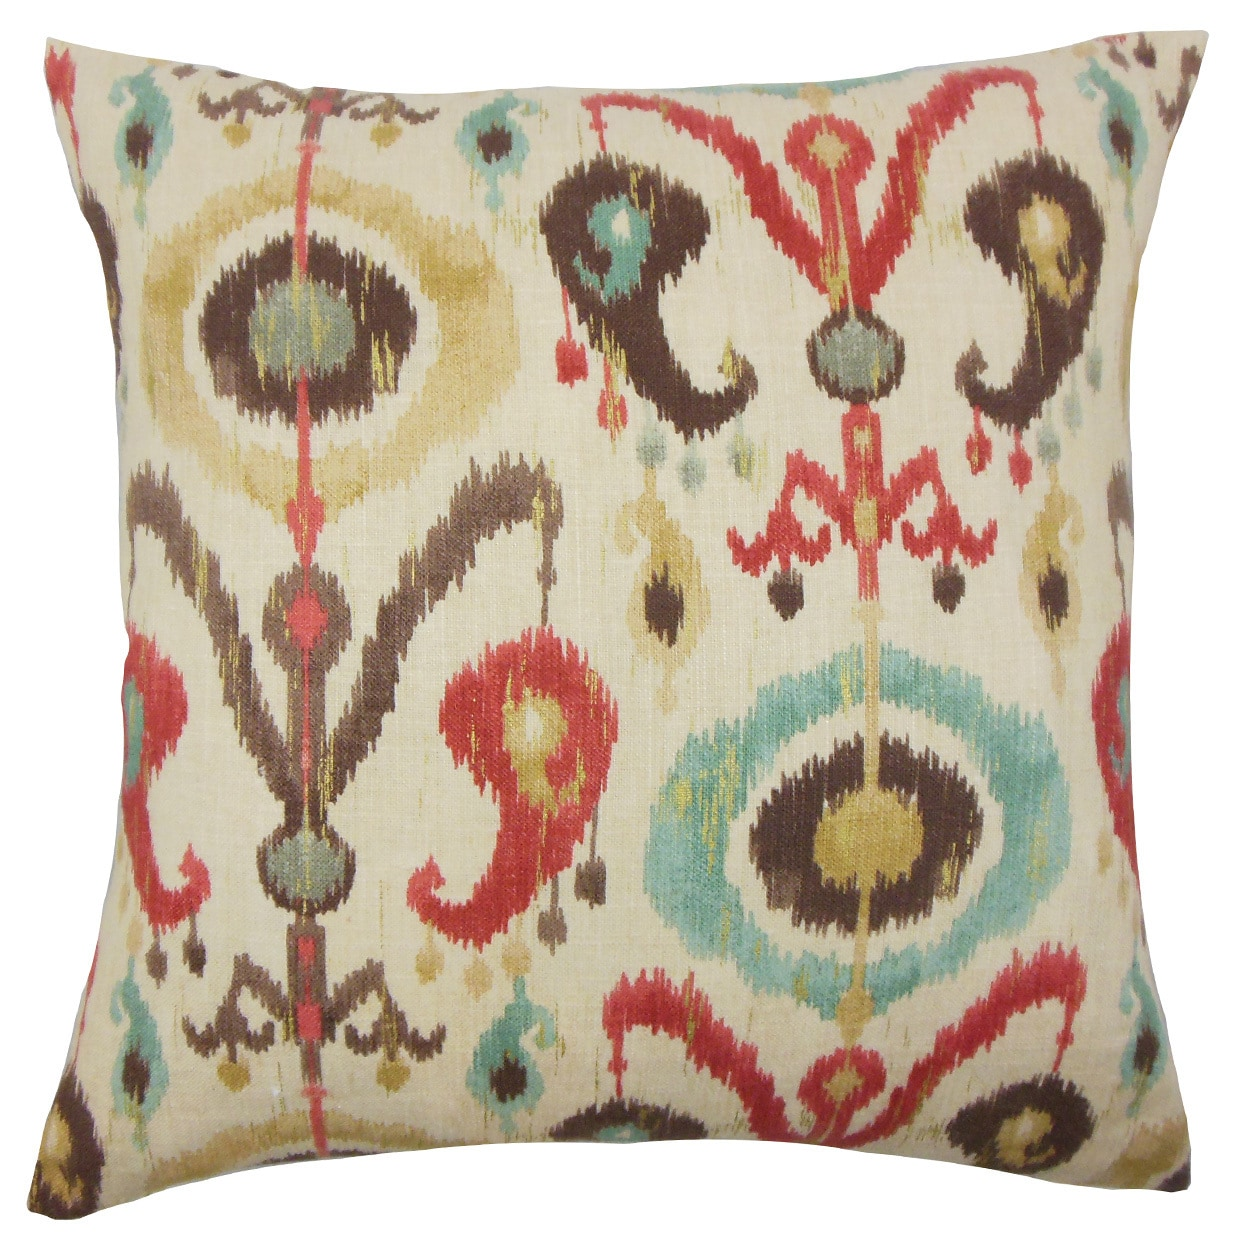 Ikea Ikat Throw Pillow Cover (Size), Multi, Size 18 x 18 ...